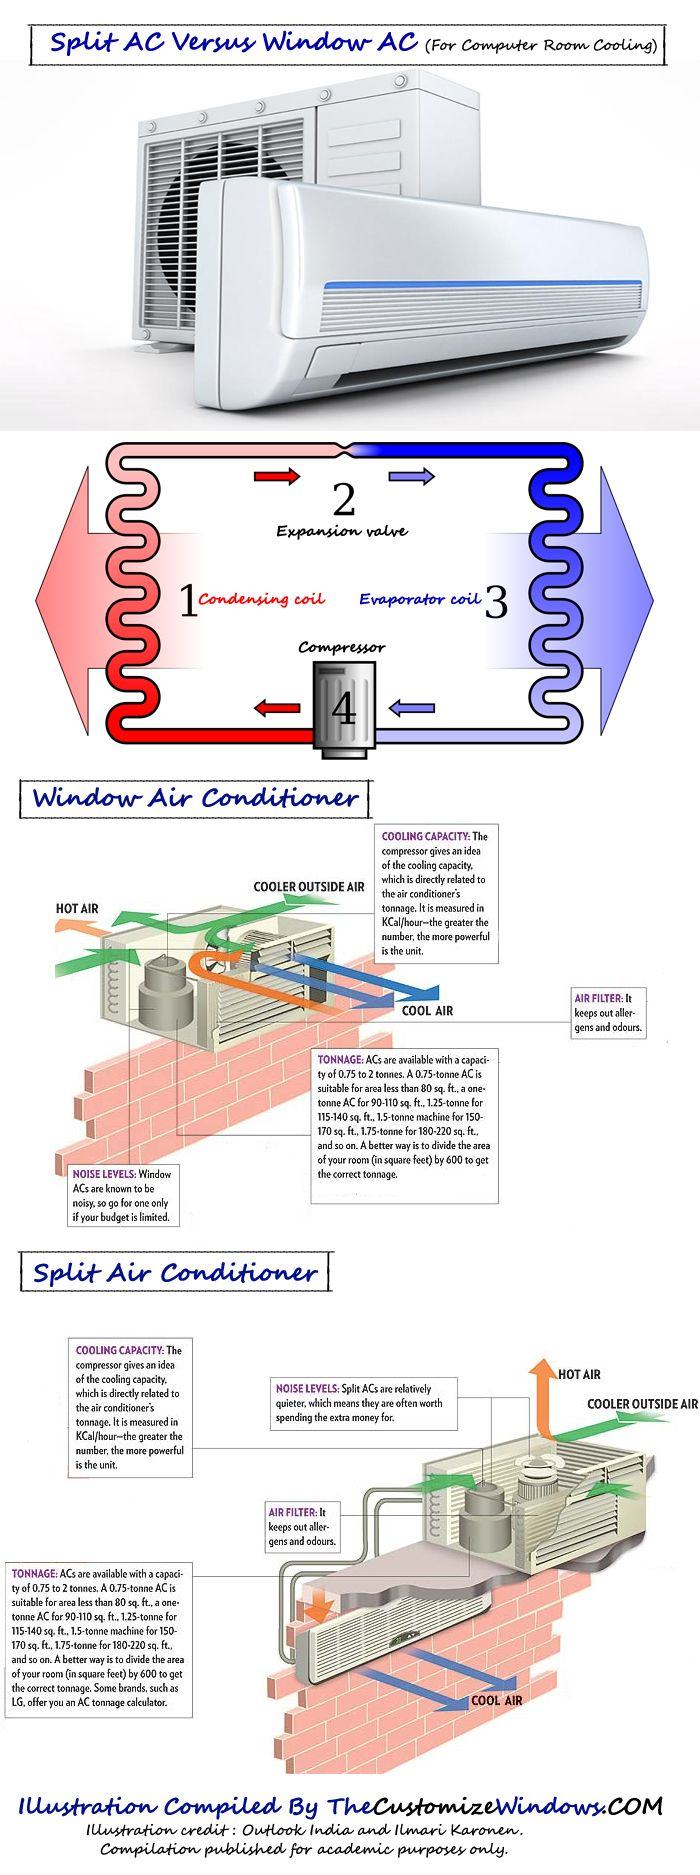 Split Ac Versus Window Ac For Computer Room Cooling Hvac Tools Home Electrical Wiring Electrical Installation